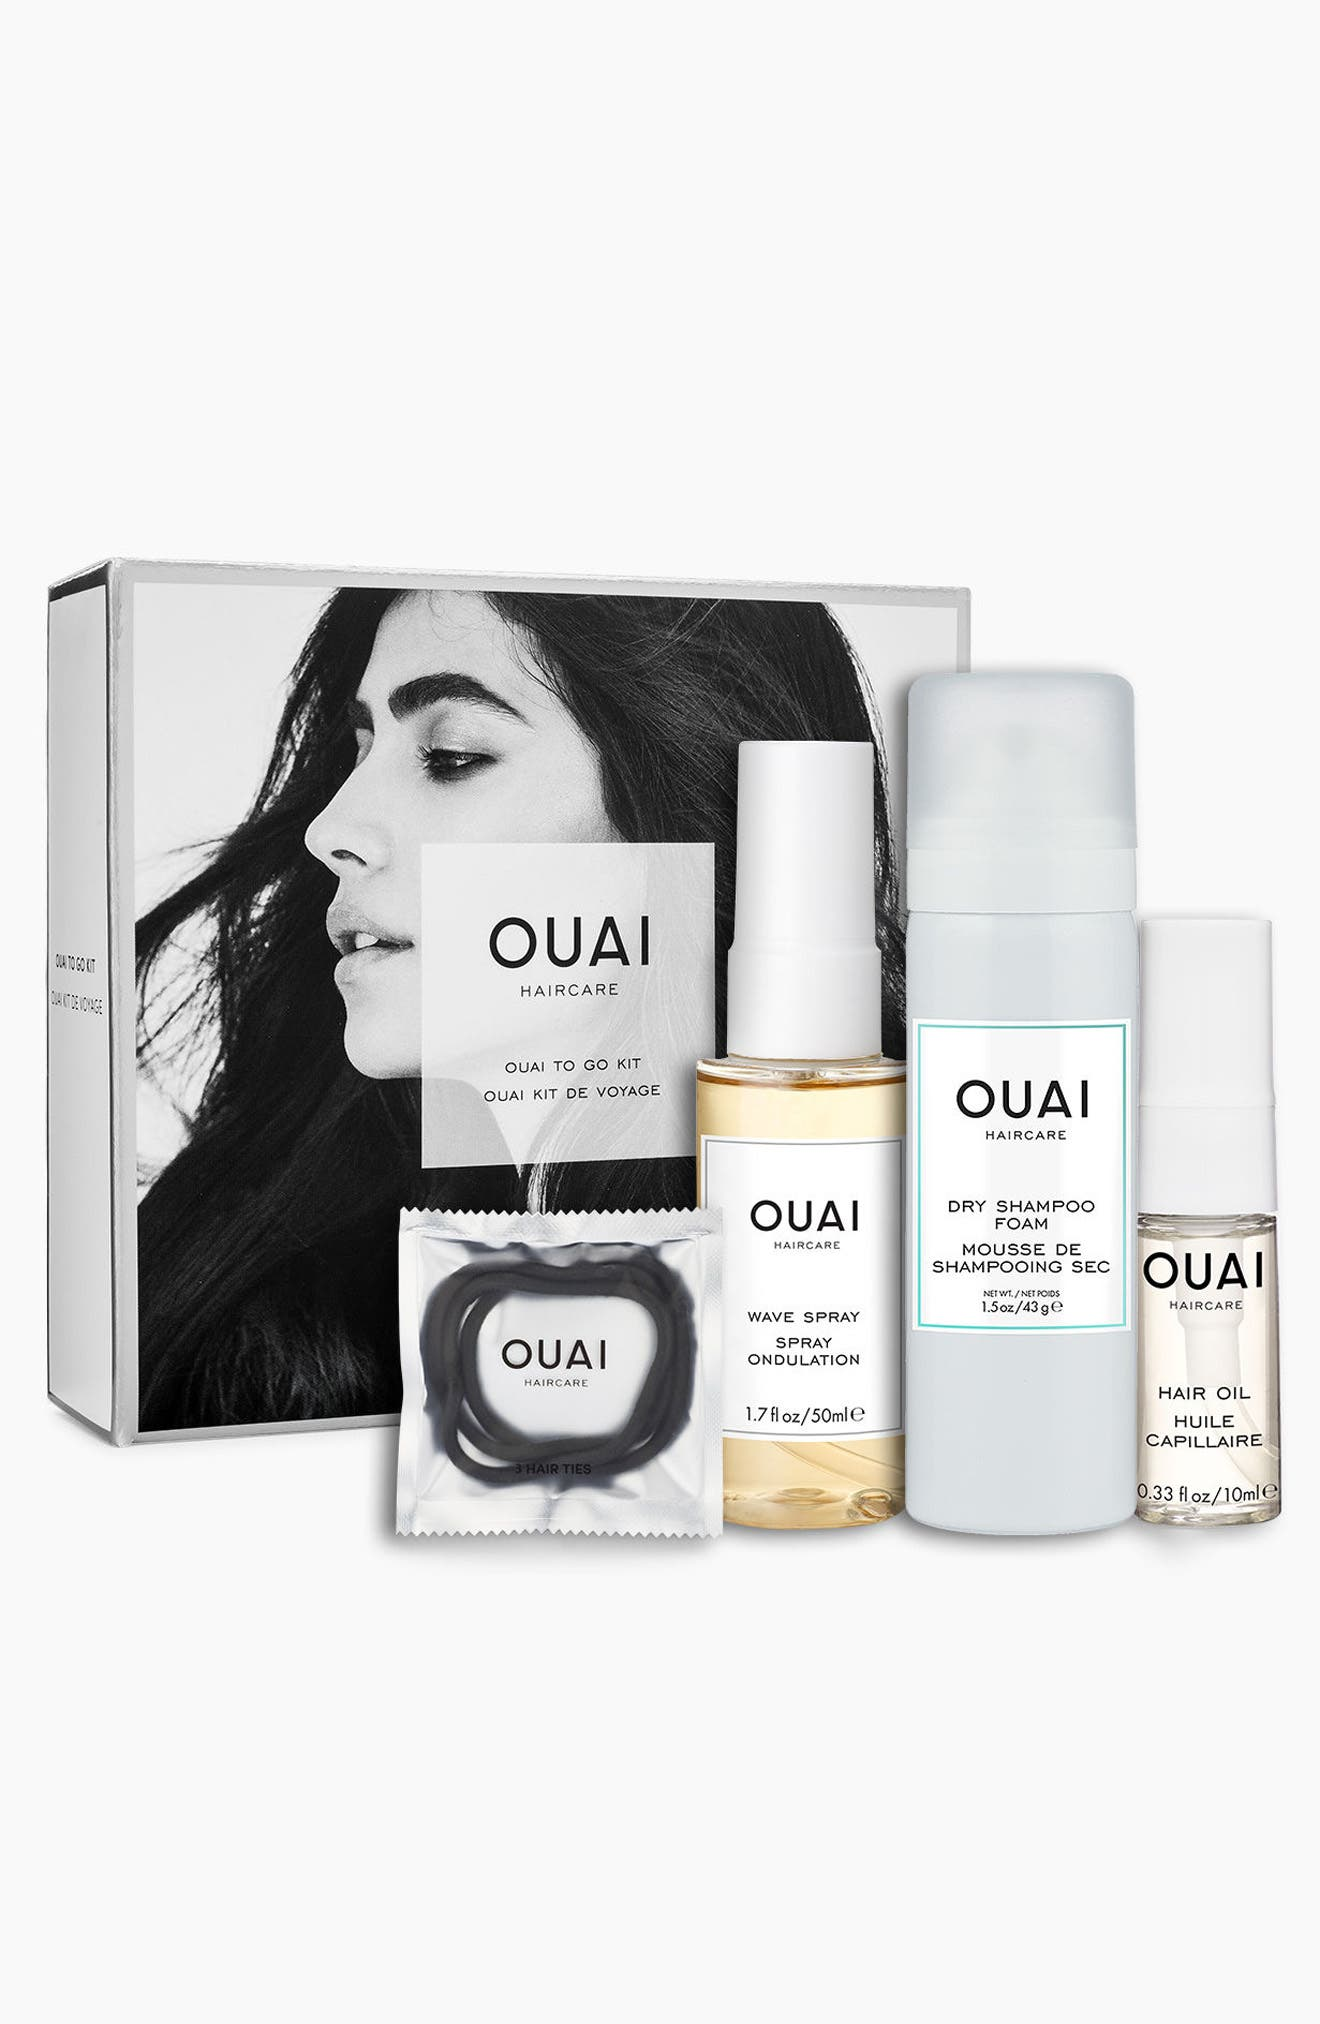 OUAI To Go Kit ($40 Value)